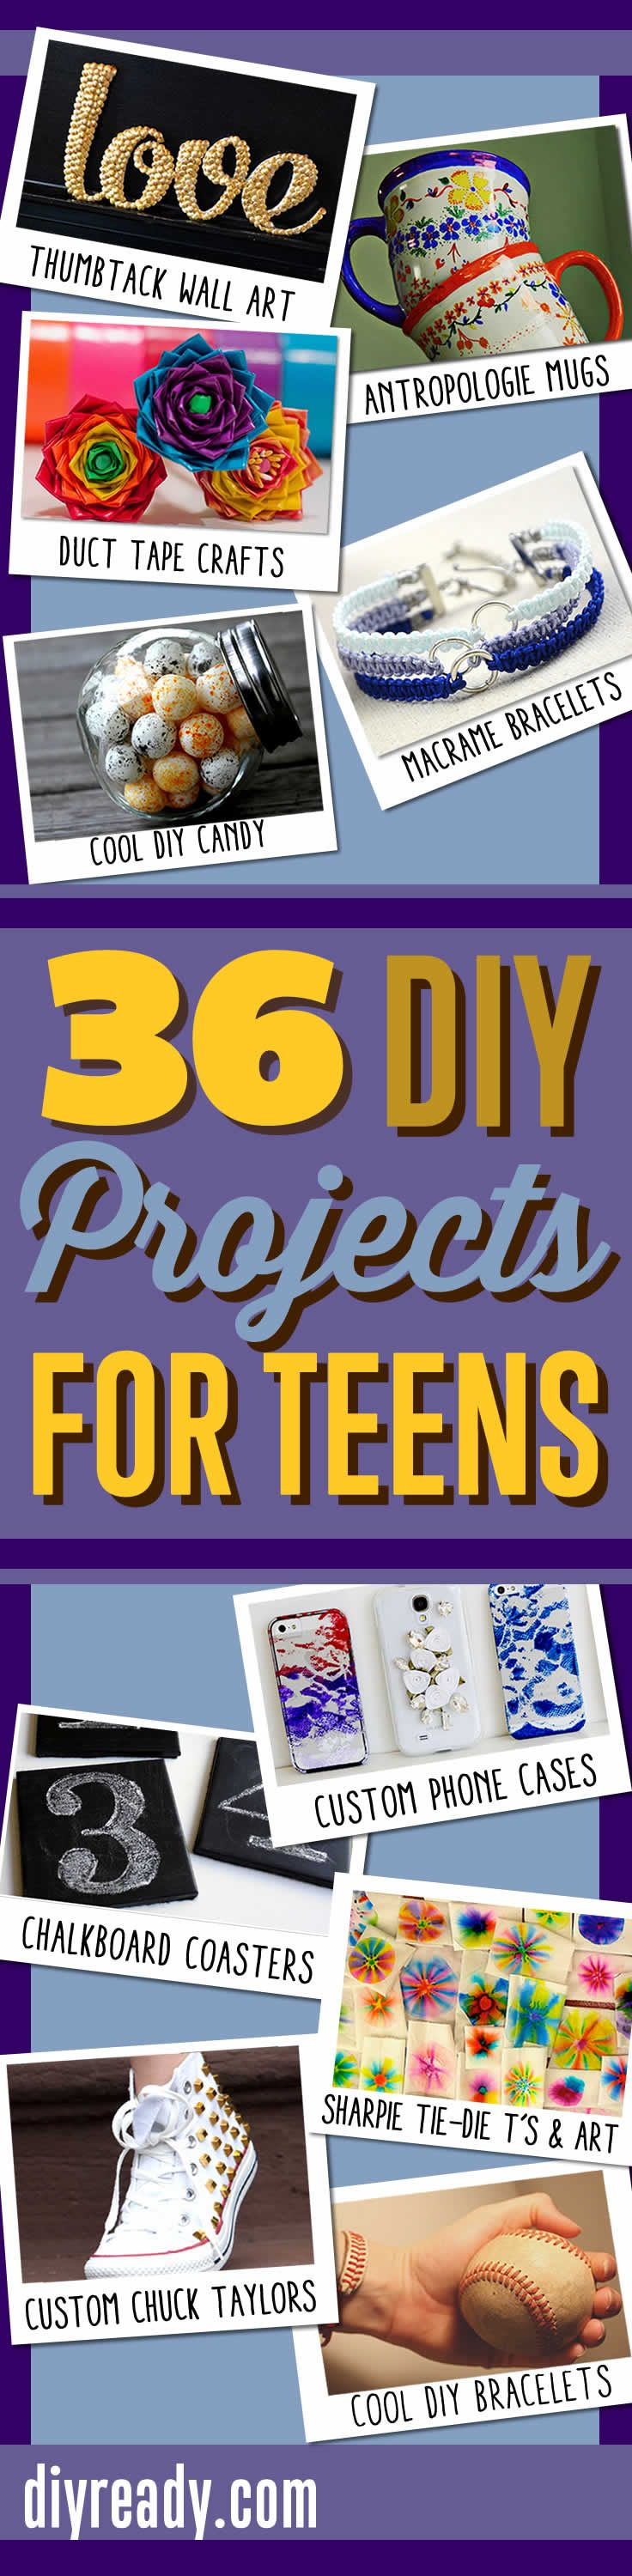 39 cool crafts for teens diy ideas teen and teen diy cool and easy diy projects for teenagers craft ideas and awesome do it yourself crafts solutioingenieria Gallery